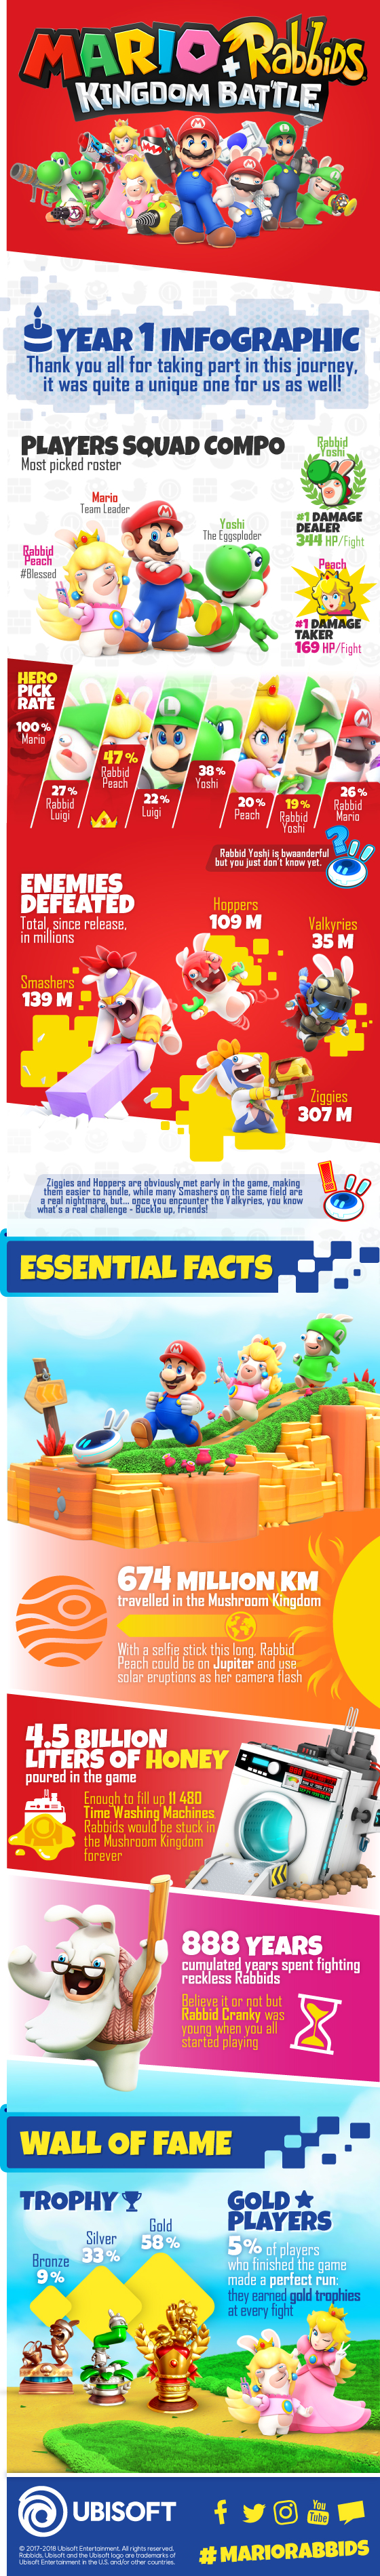 Mario + Rabbids: Kingdom Battle Infographic